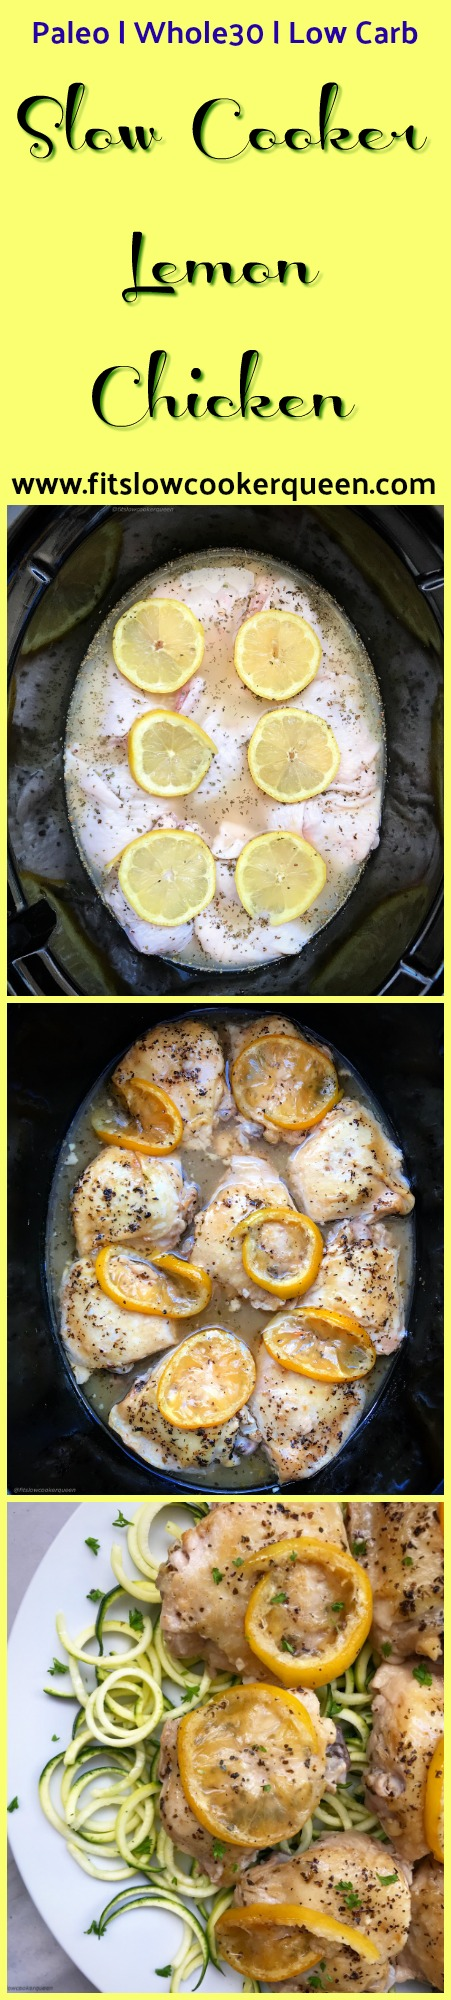 This lemon chicken slow cooker recipe looks simple because it is! Light yet citrusy, this recipe is low-carb, paleo, and whole30.